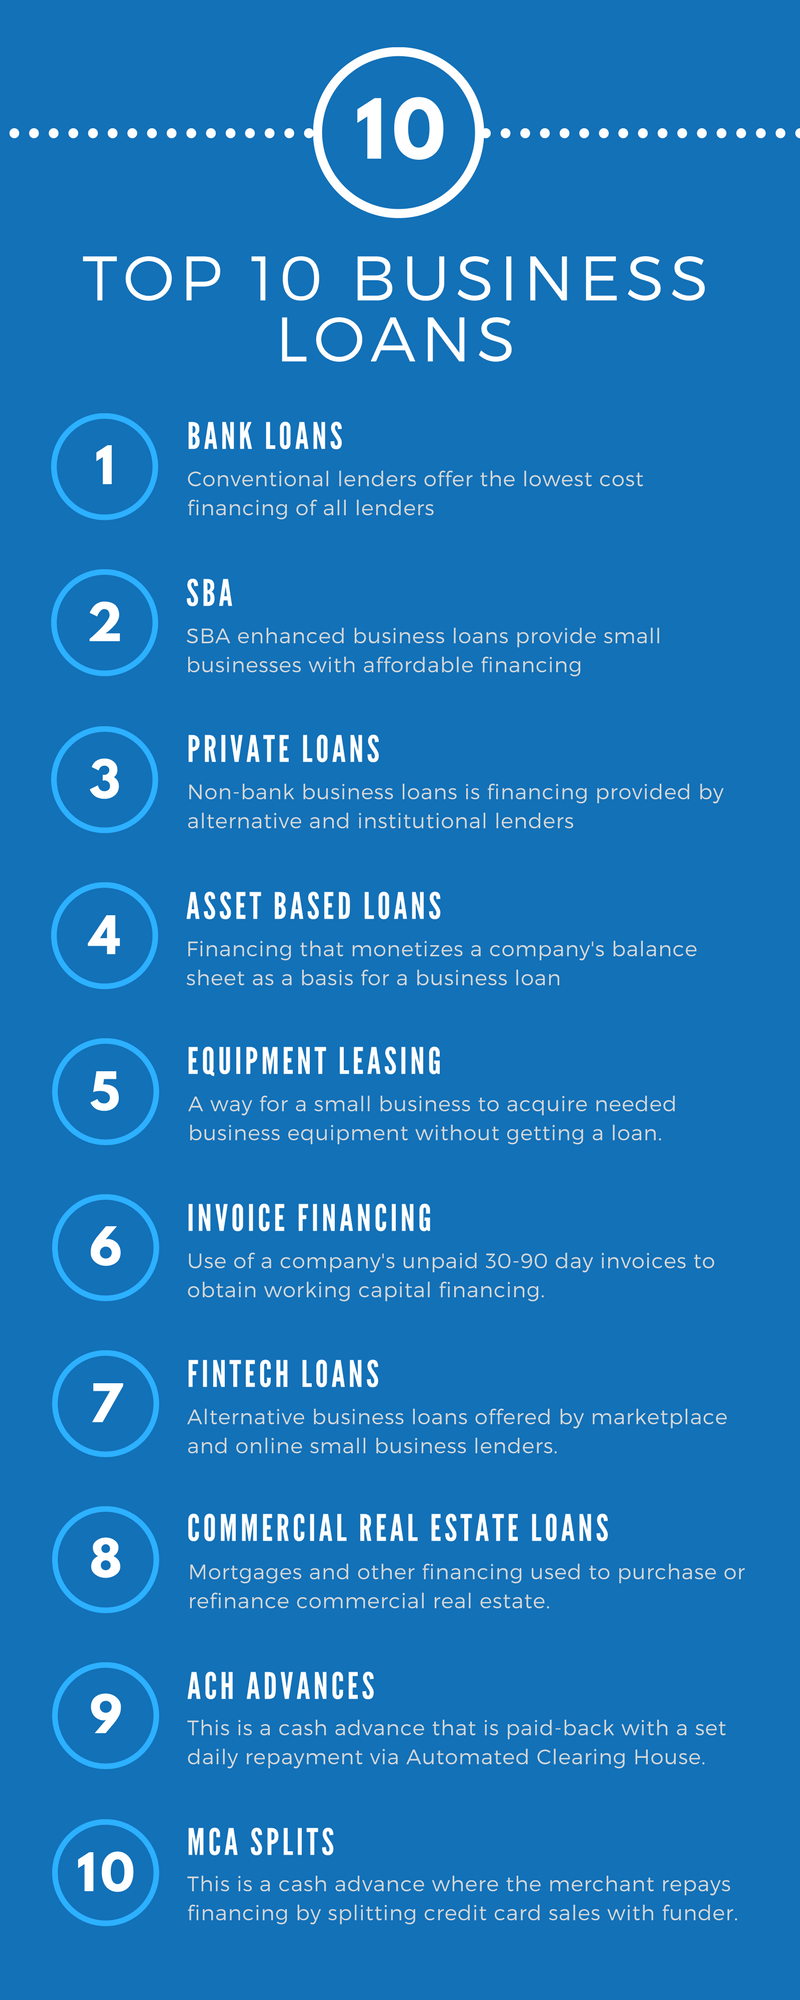 101 business loan tips advice for small businesses seeking loans the receivables used in an mca advance are credit card sales and repayment is made by splitting each days credit card sales with the funder until repaid reheart